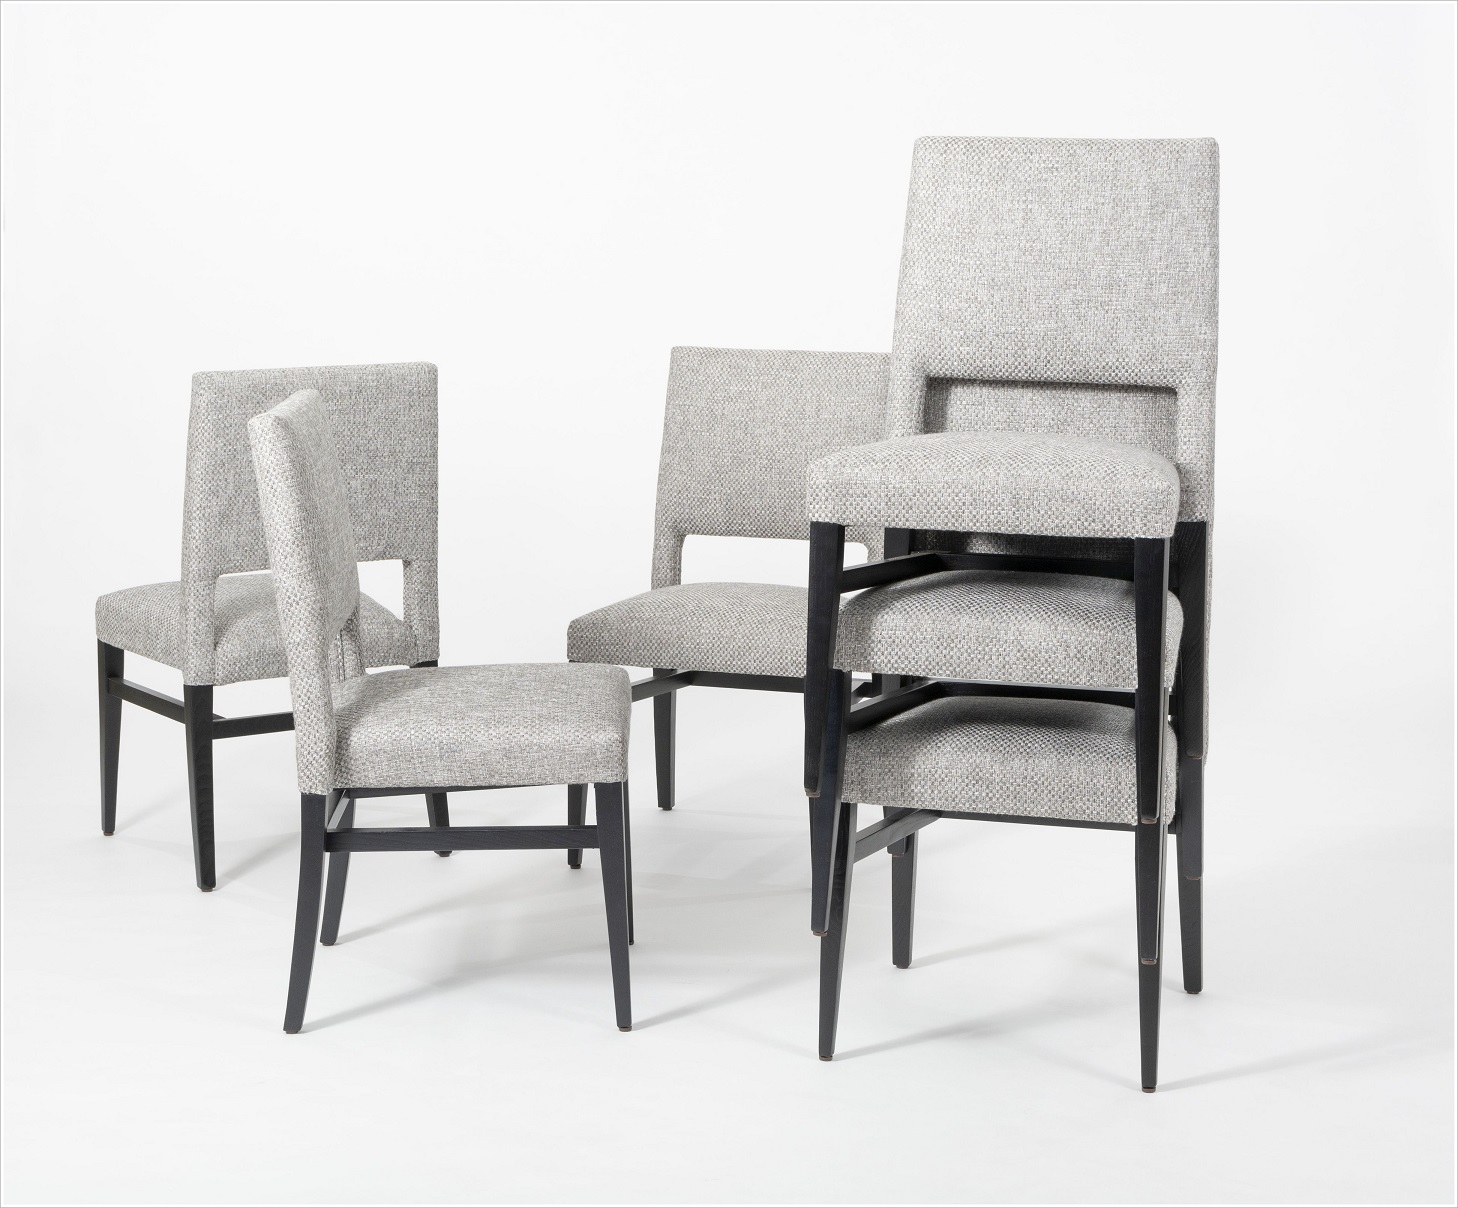 Custom Stacking Chairs